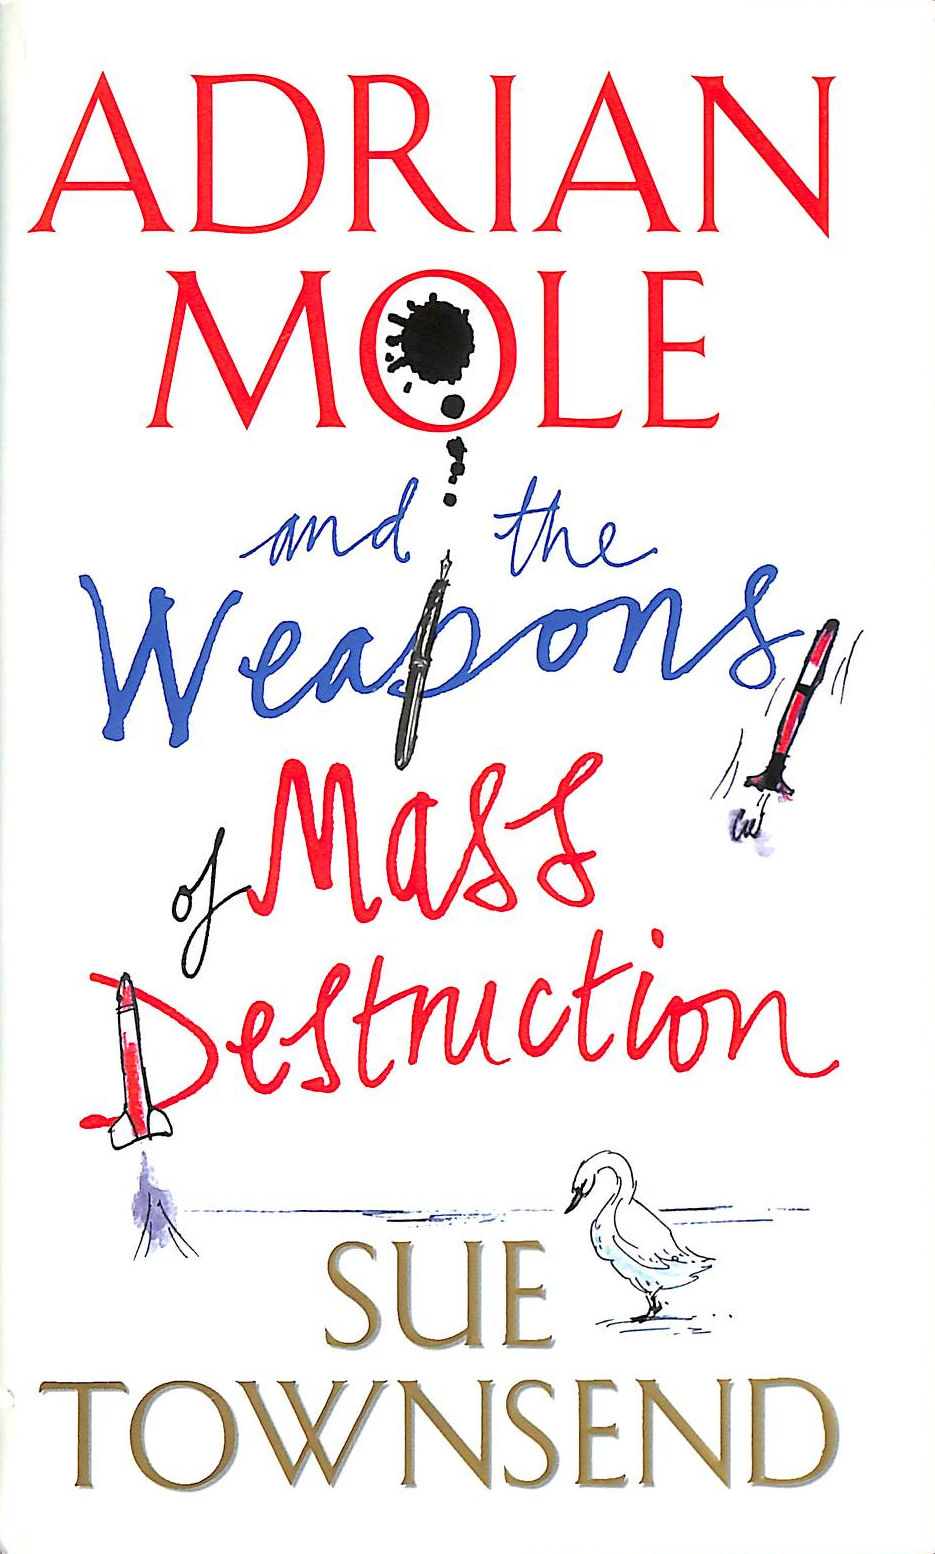 Image for Adrian Mole And The Weapons Of Mass Destruction